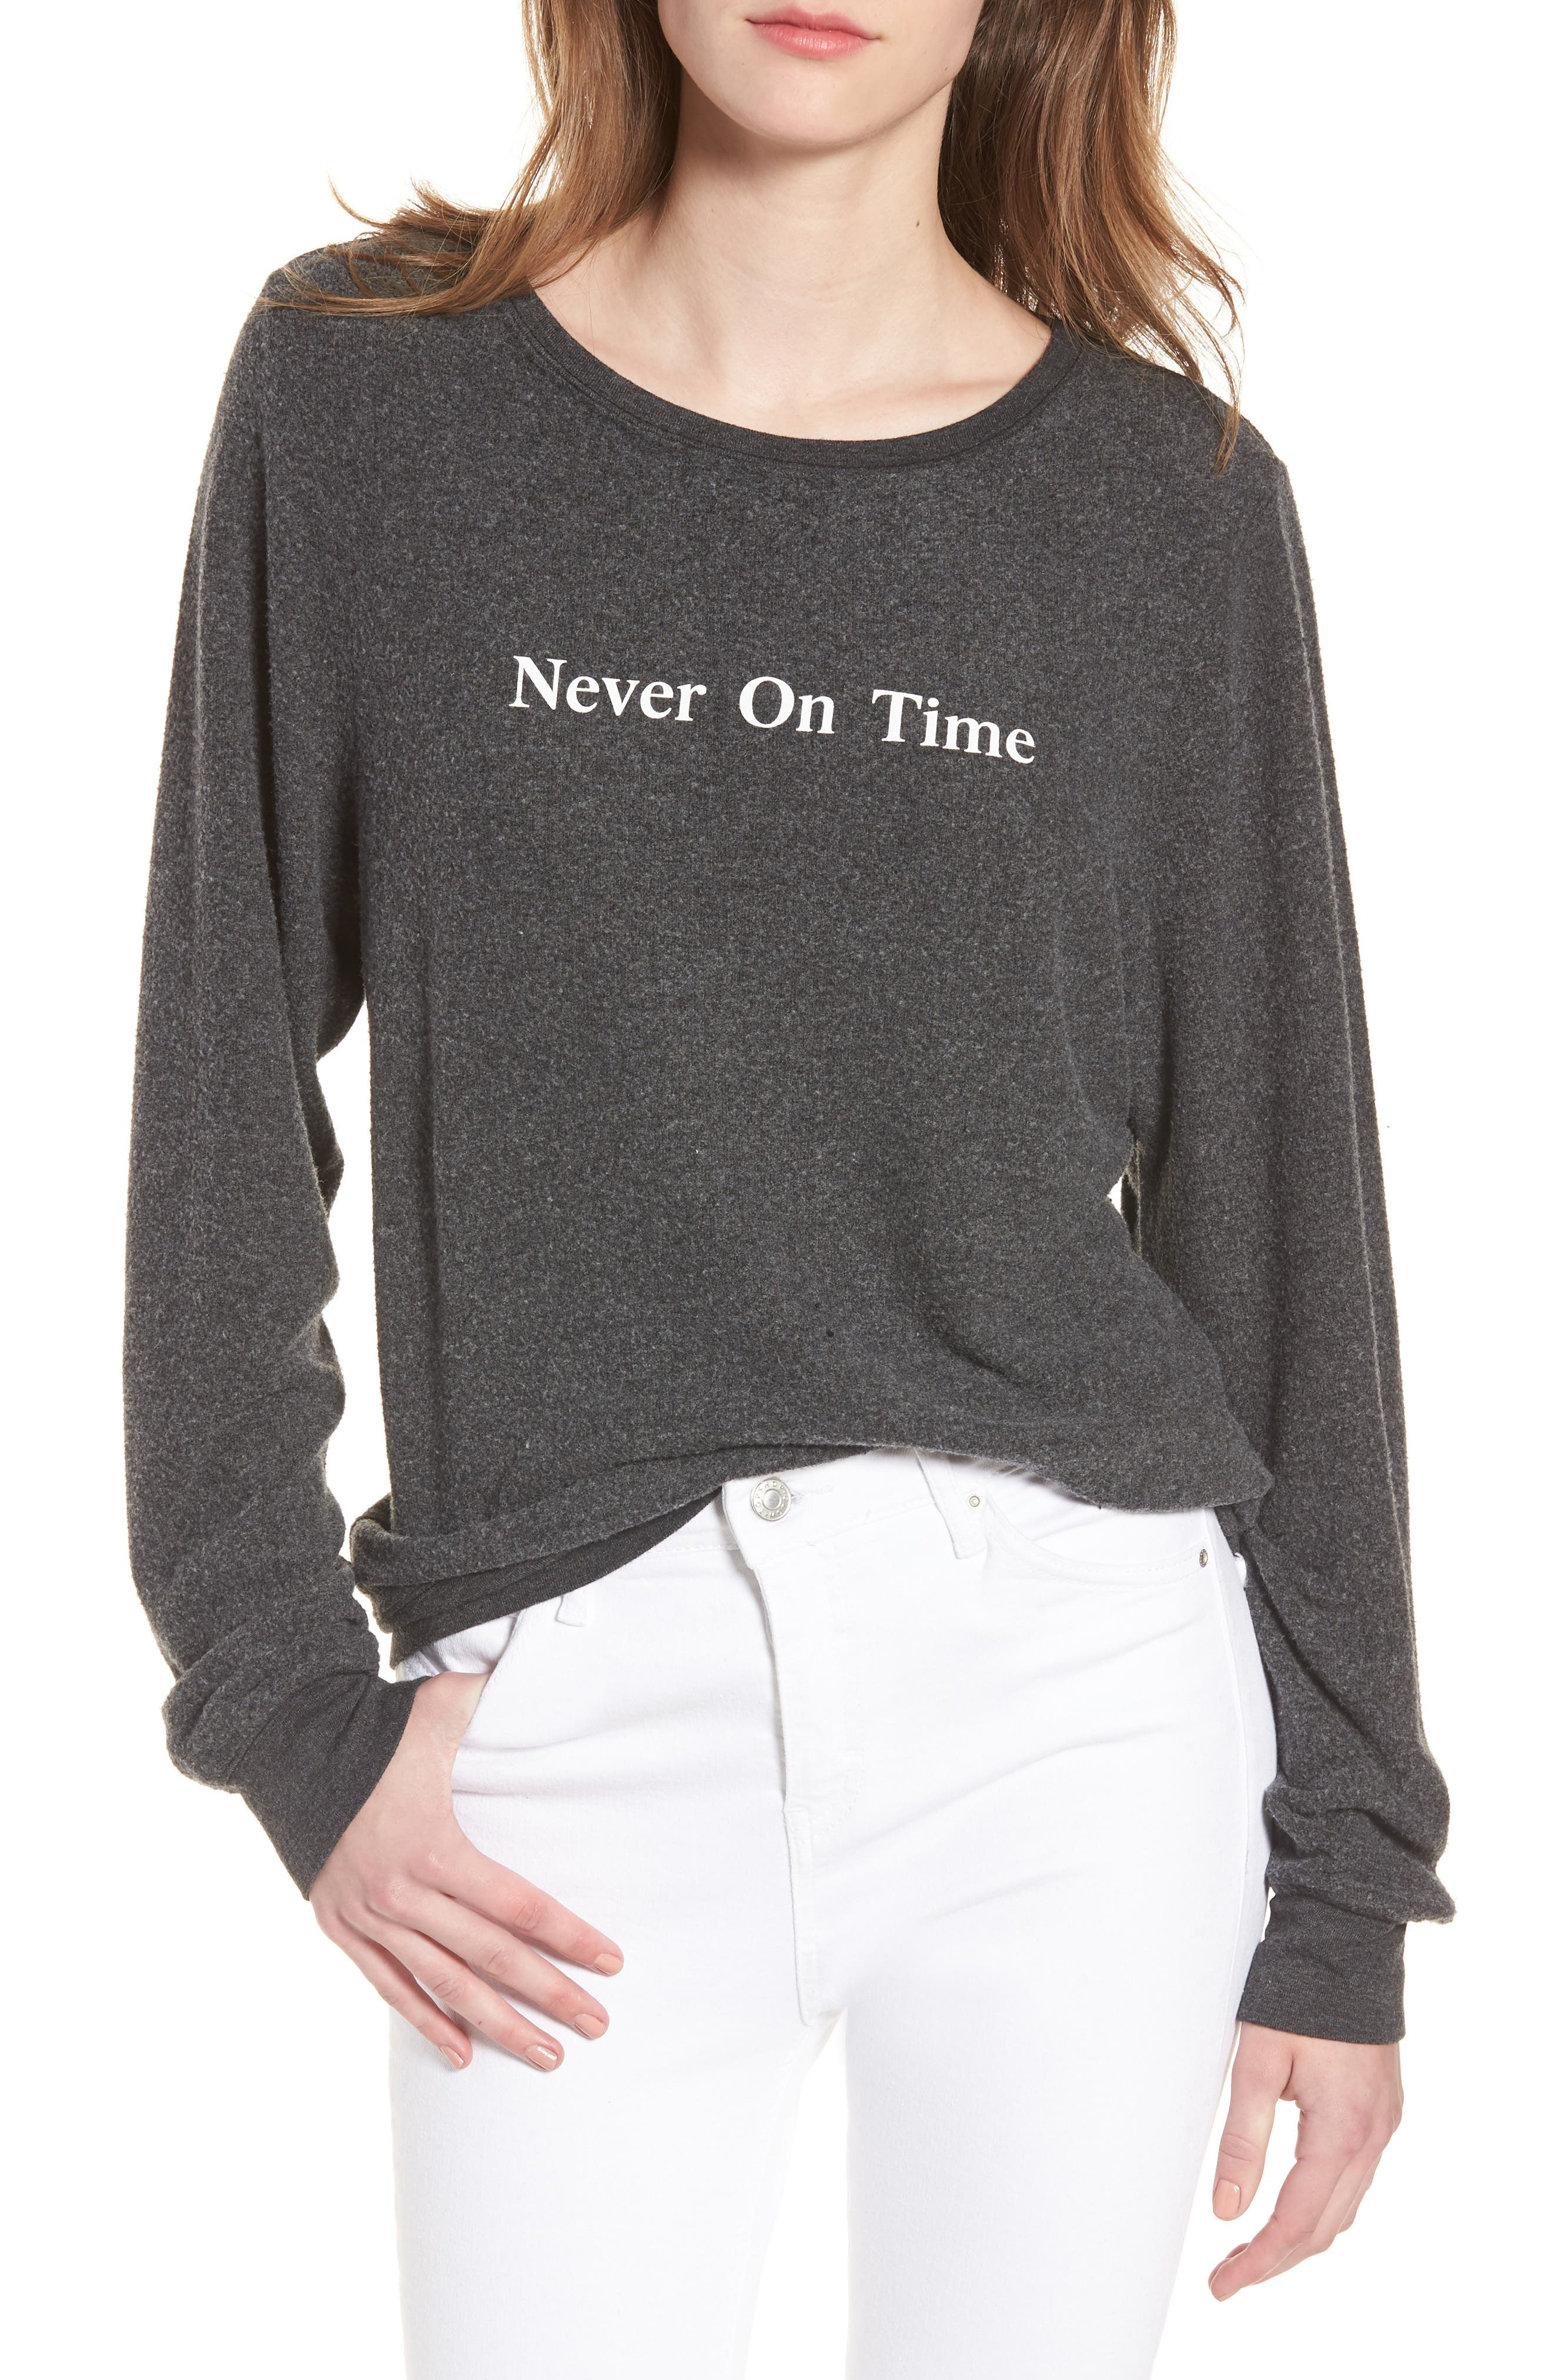 Never on Time Baggy Beach Jumper Pullover,                             Main thumbnail 1, color,                             001